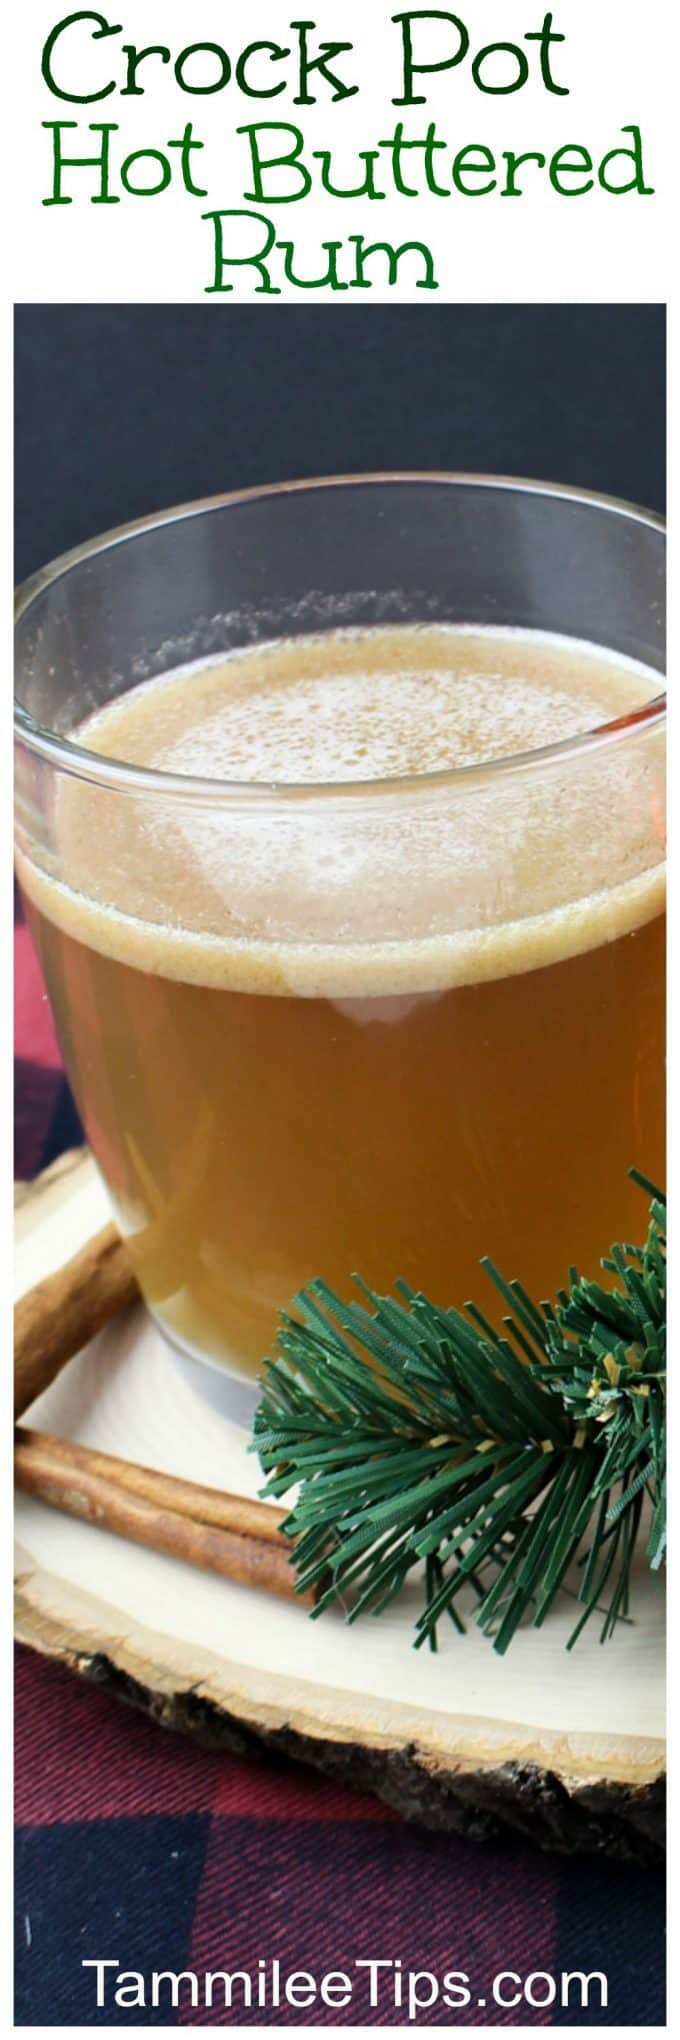 Quick and easy crockpot Hot Buttered Rum Cocktail Recipe will warm you from the inside on a cold winter night. This easy slow cooker crock pot recipe is delicious!